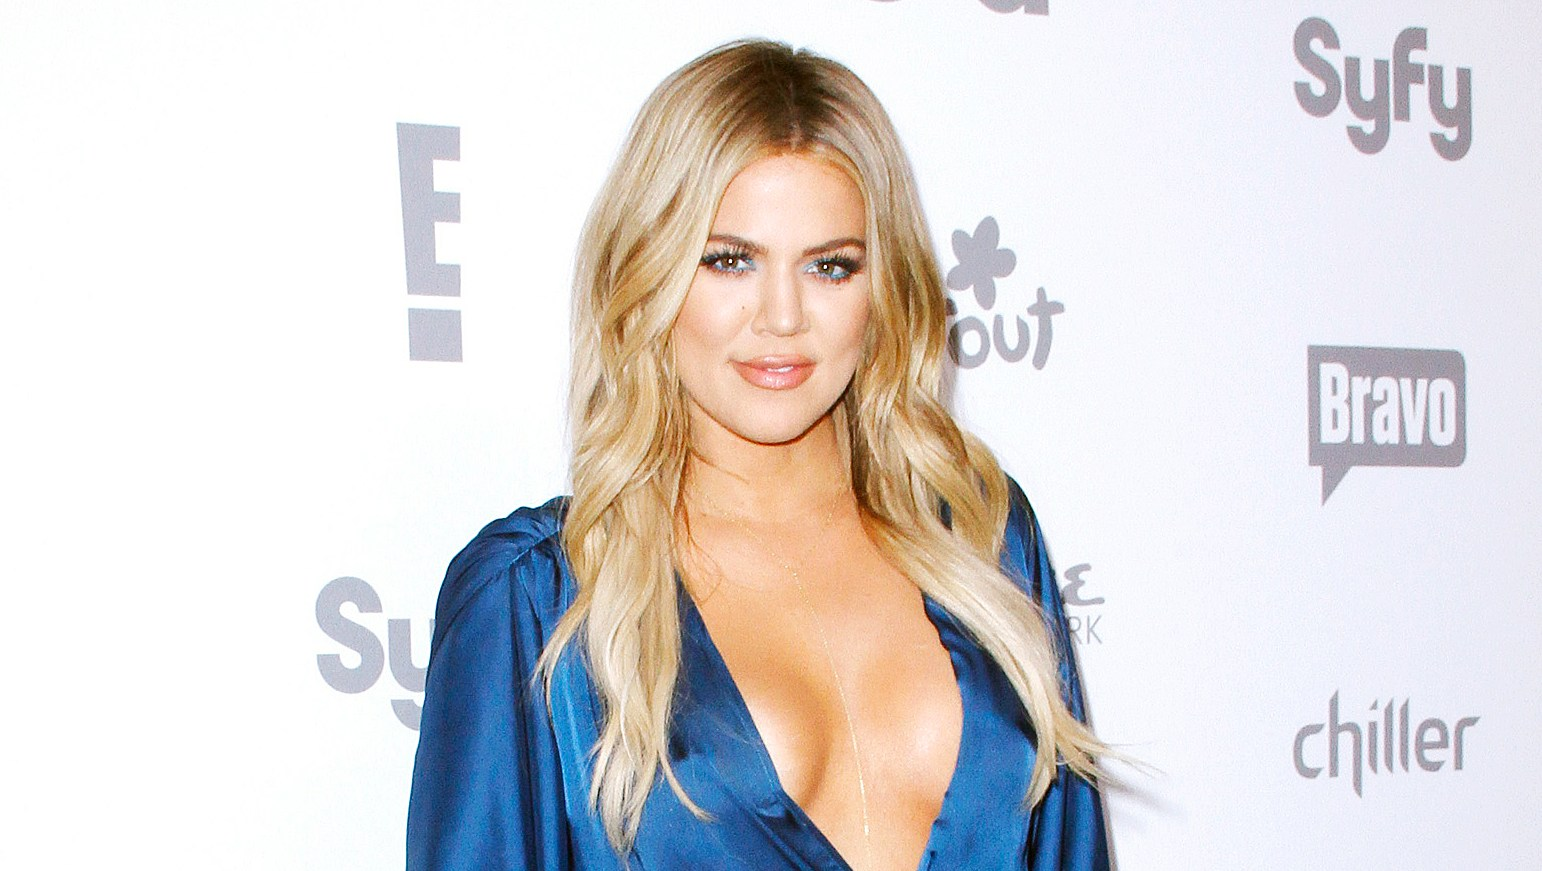 Khloe Kardashian Reveals Hopes for Daughter